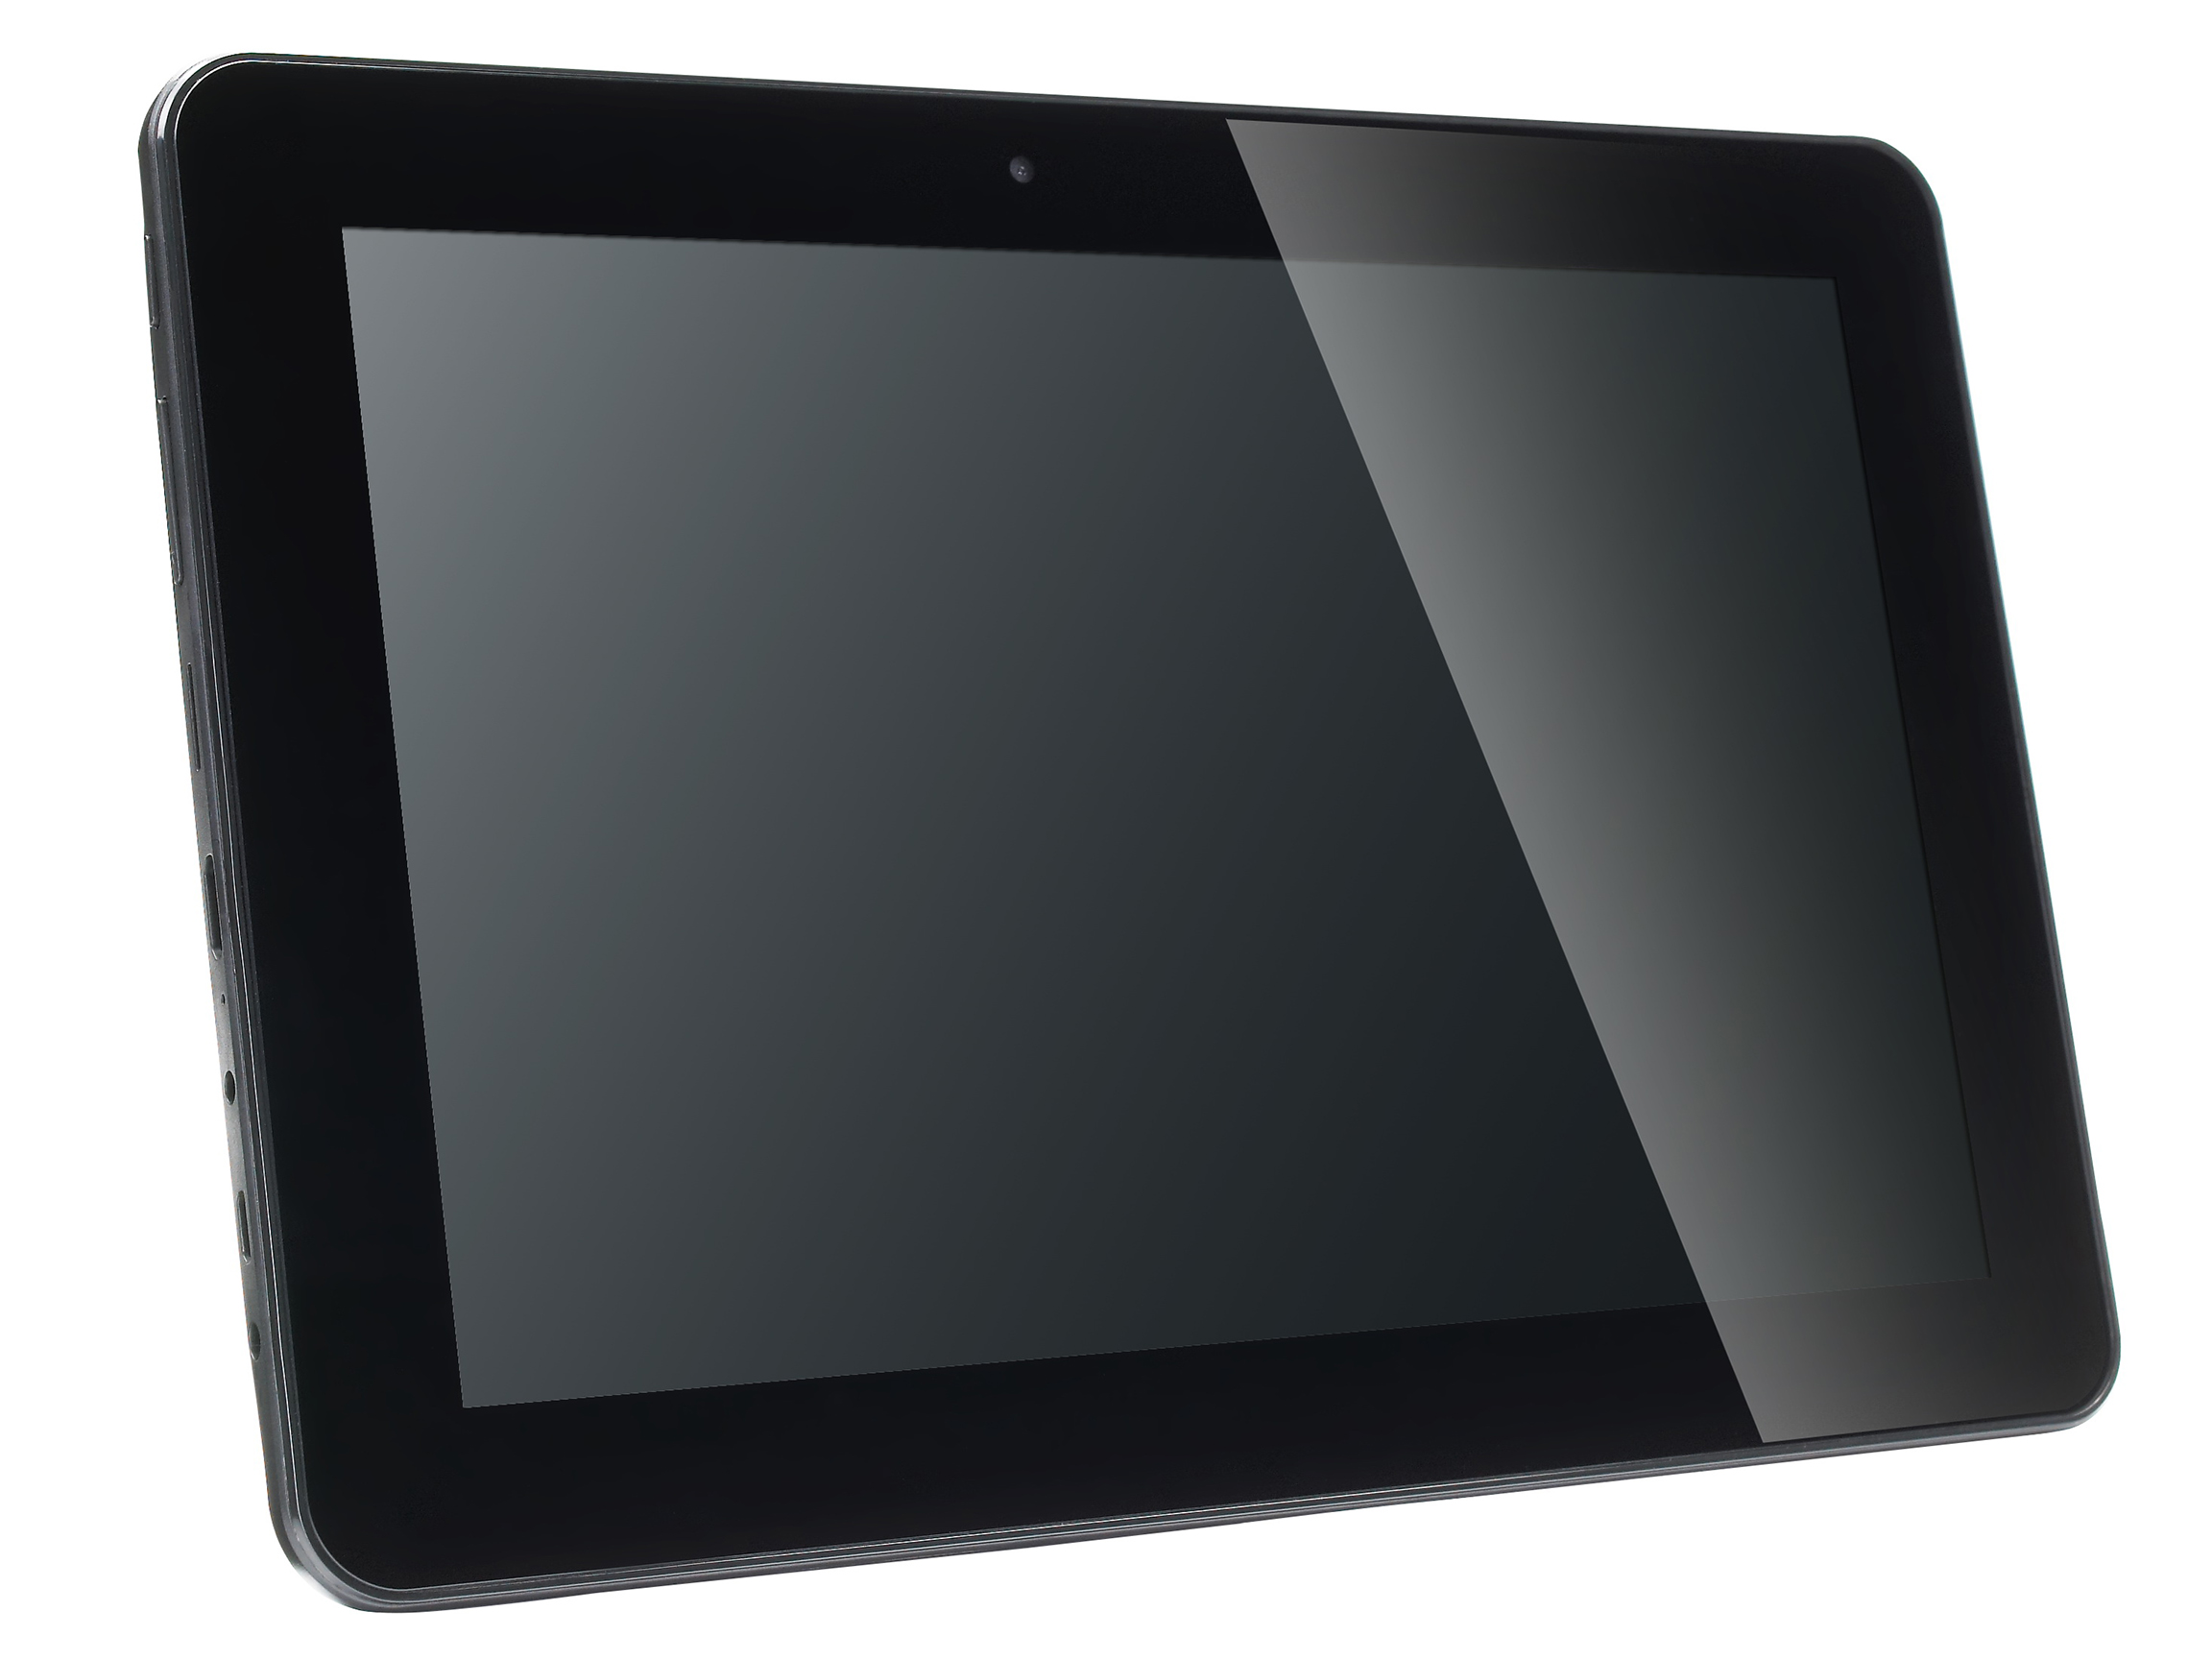 "Hannspree SN1AT71BUE Quad-Core 1GB Memory 16GB Flash 10.1"" Touchscreen Tablet Android 4.1 (Jelly Bean)"